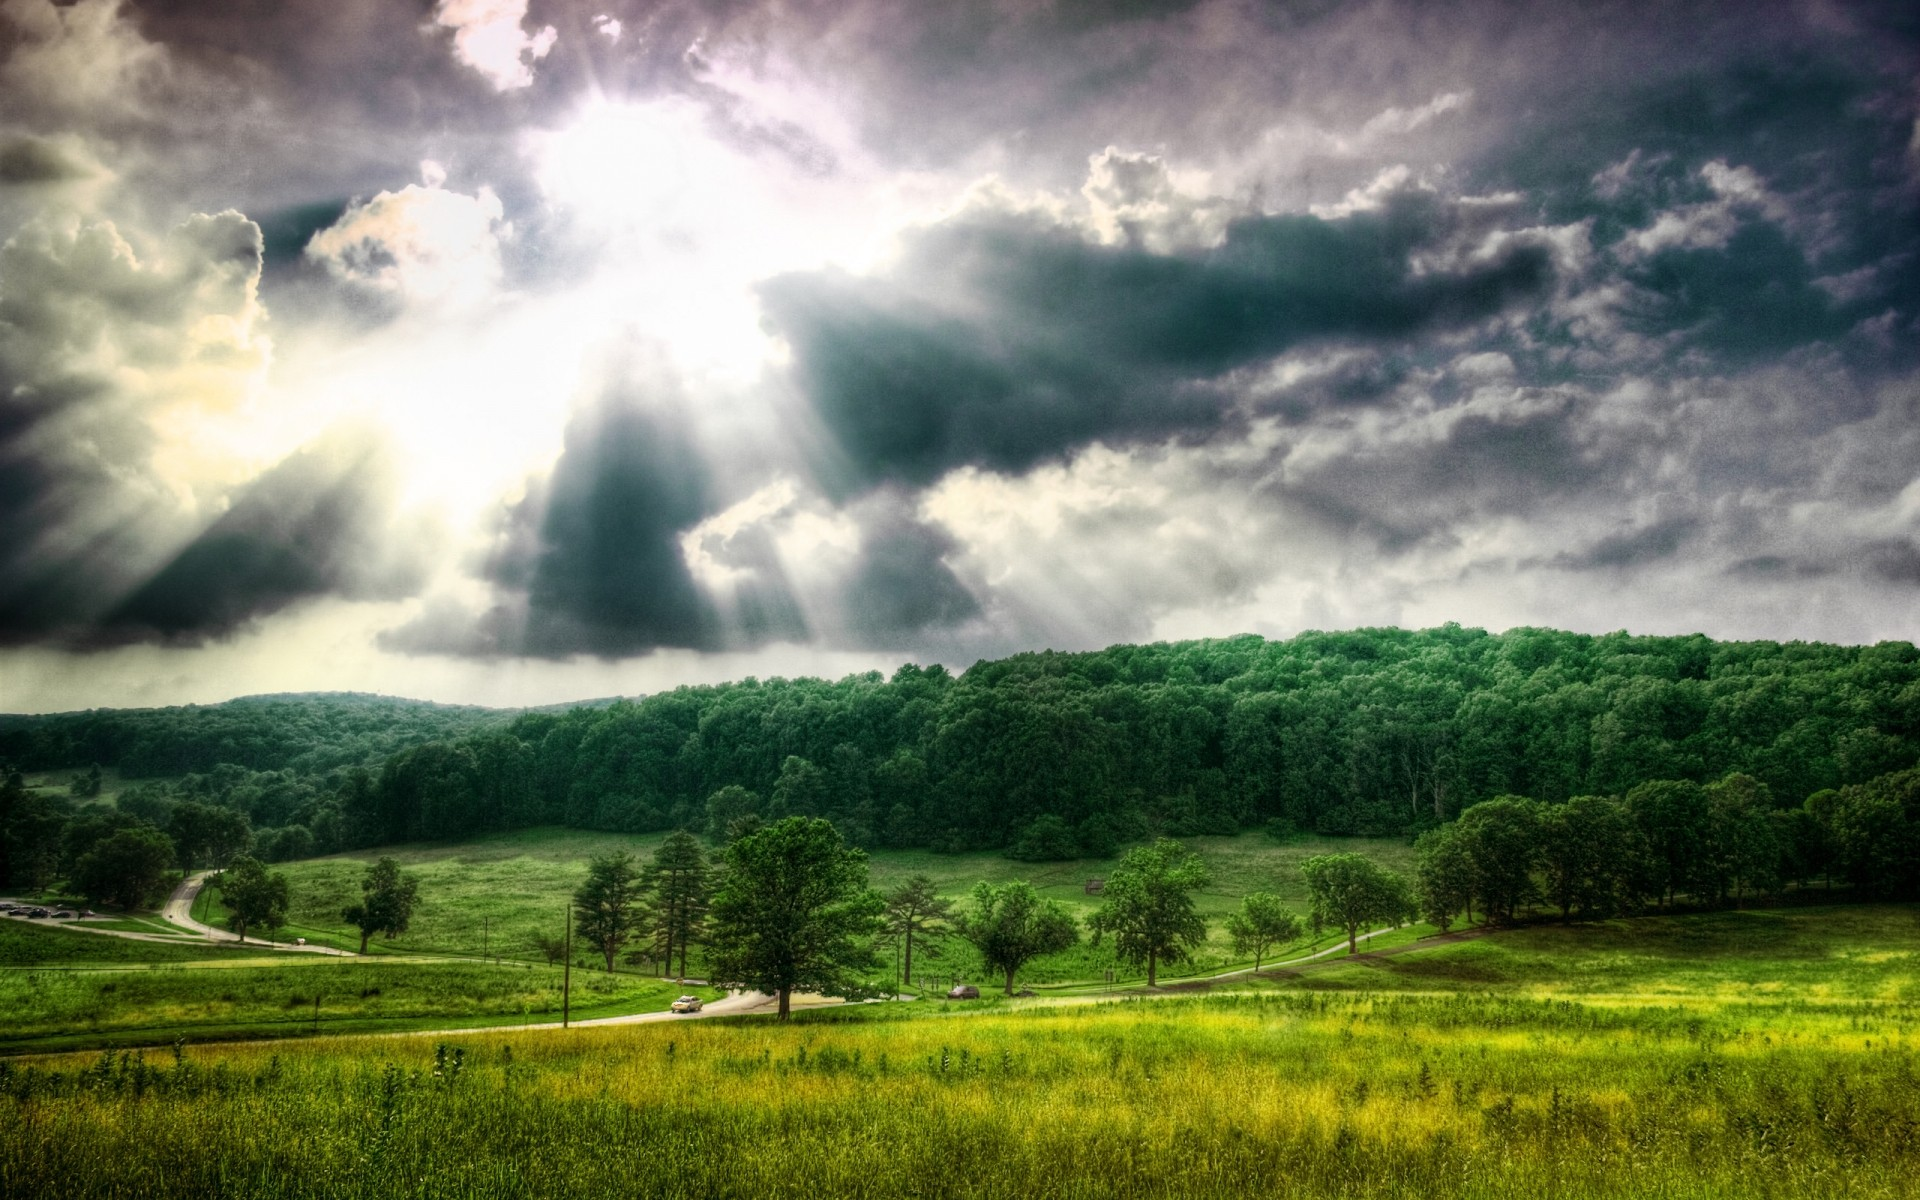 landscapes landscape nature sky rural countryside cloud tree field summer cloudy sun grass agriculture fair weather storm outdoors farm wood weather clouds forest hdr